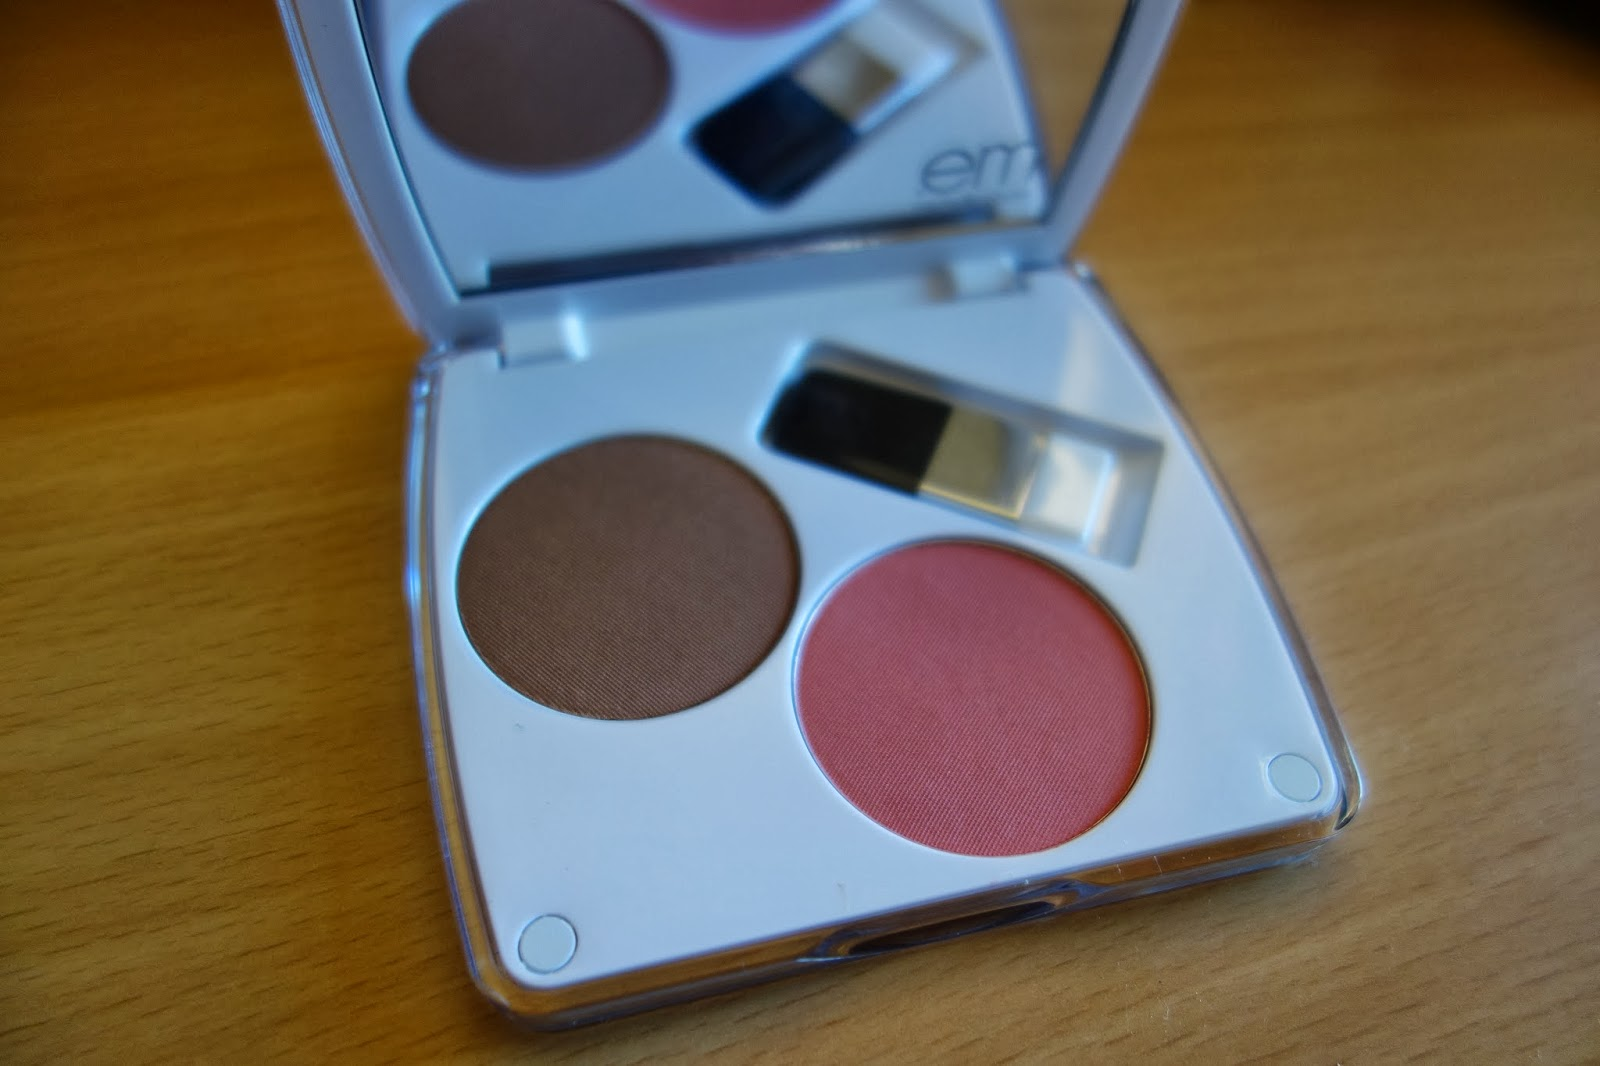 em / shade play artistic cheek color palette